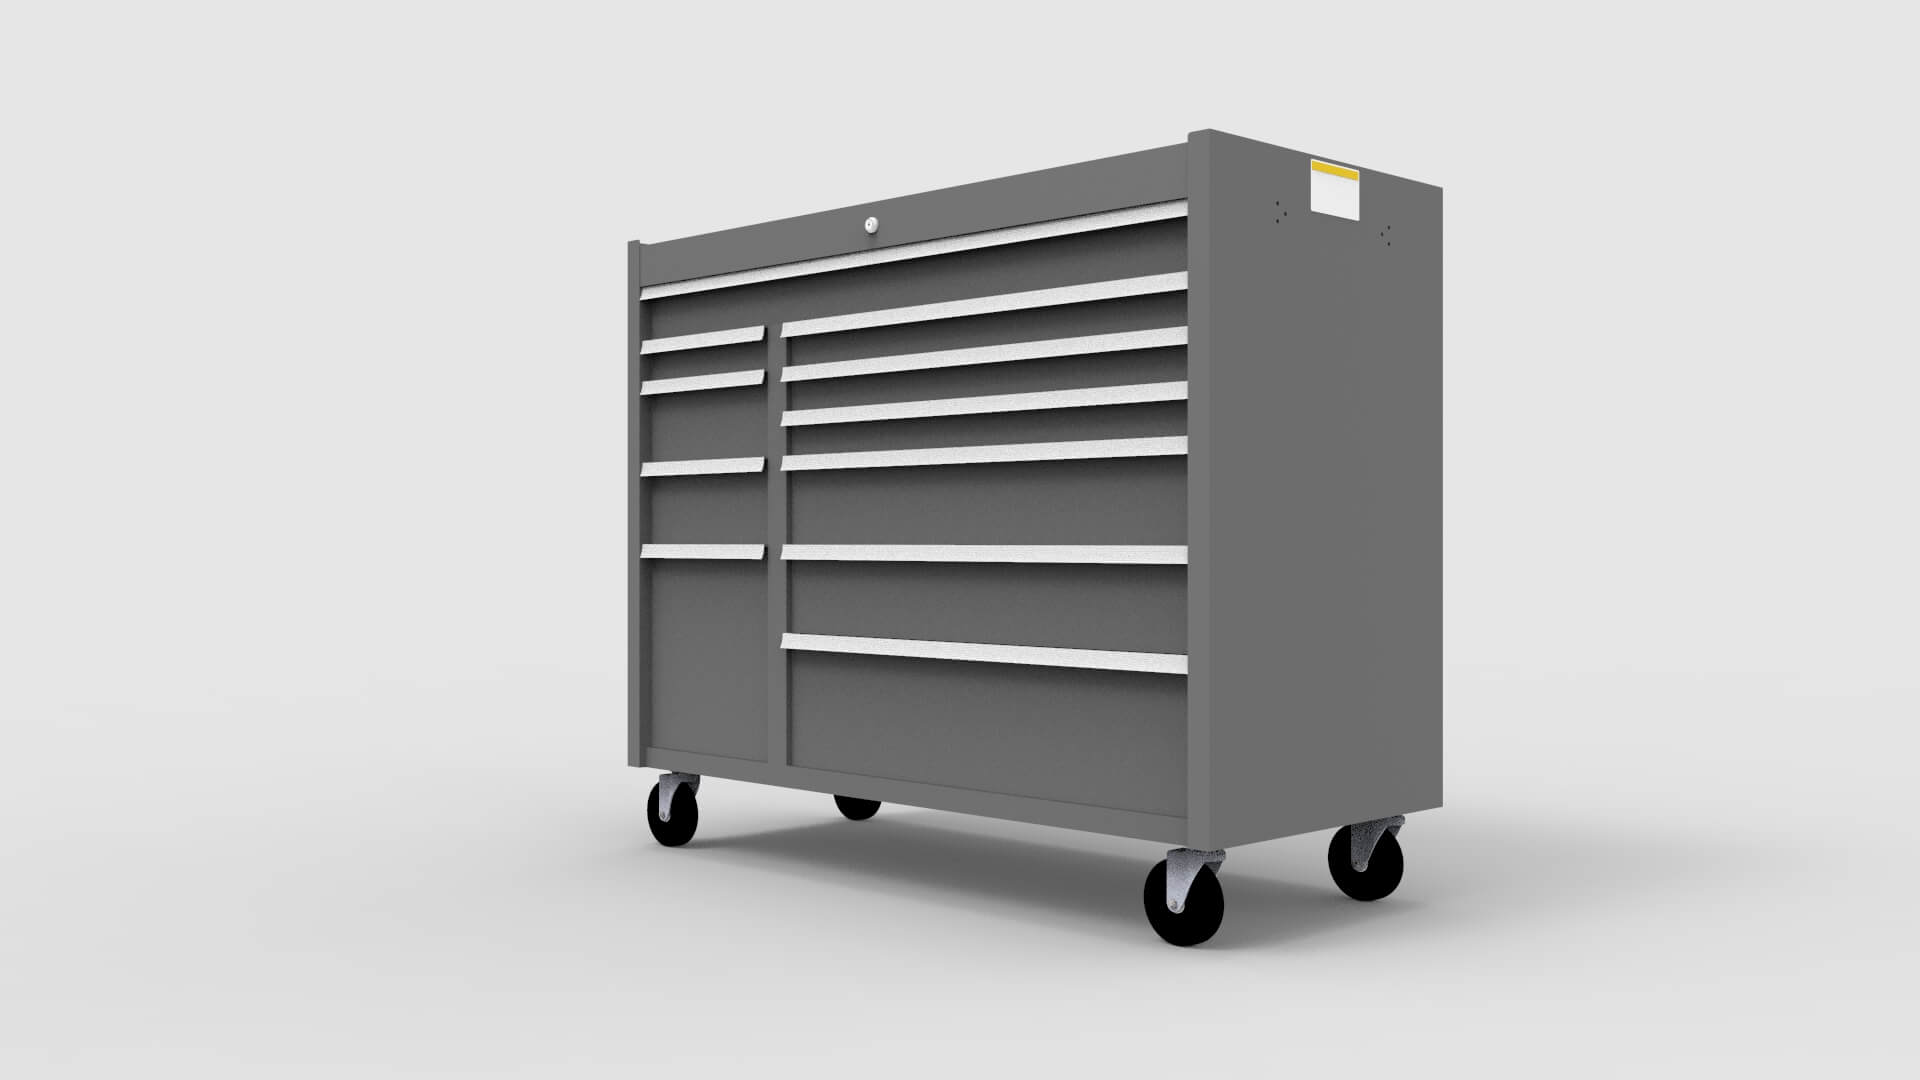 steel-mobile-drawer-cabinet-product.jpg